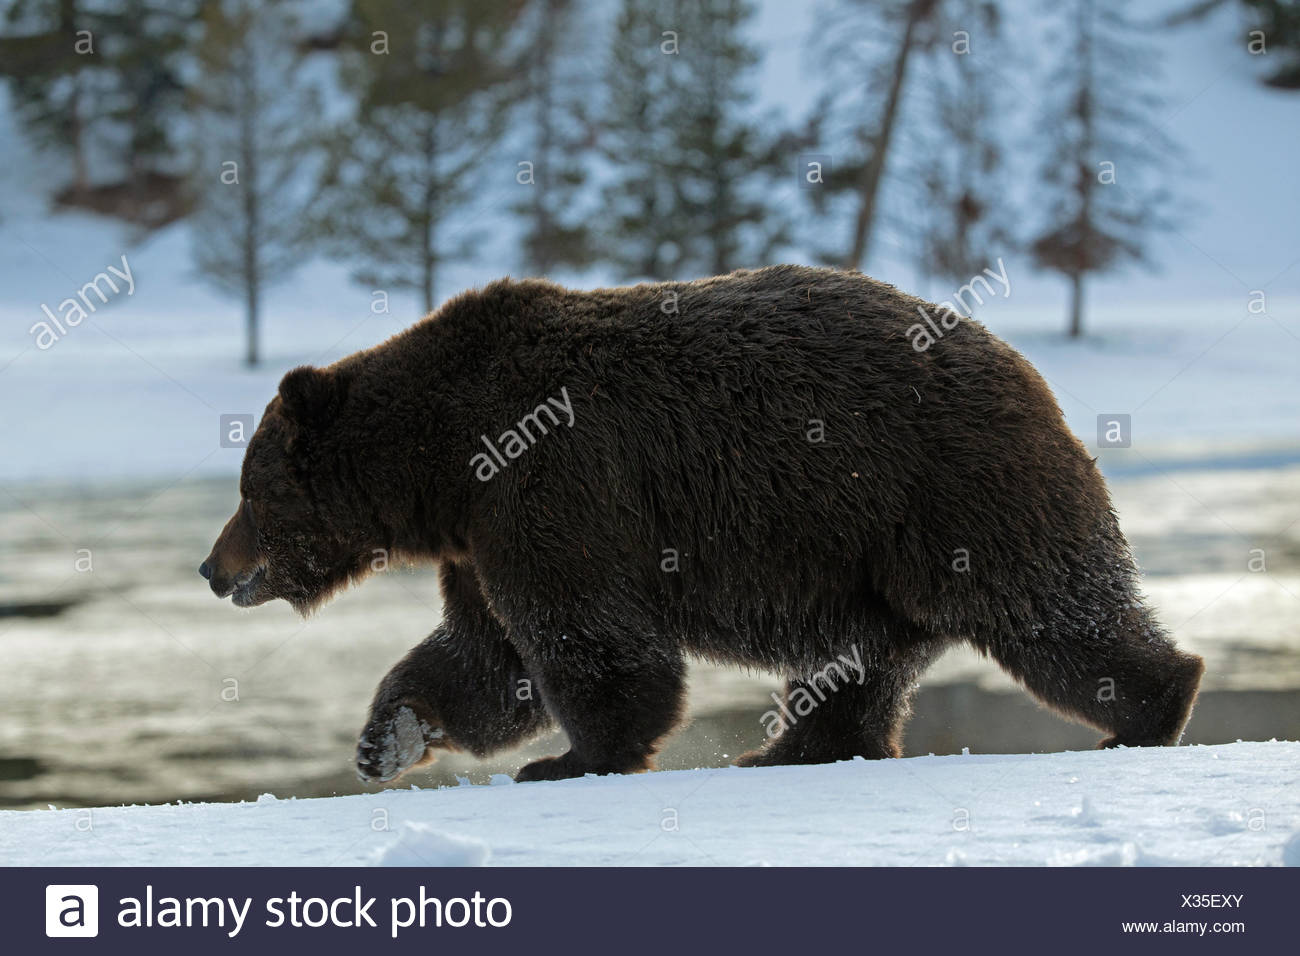 A grizzly bear, Ursus arctos horribilis, on the move in Yellowstone National Park. - Stock Image